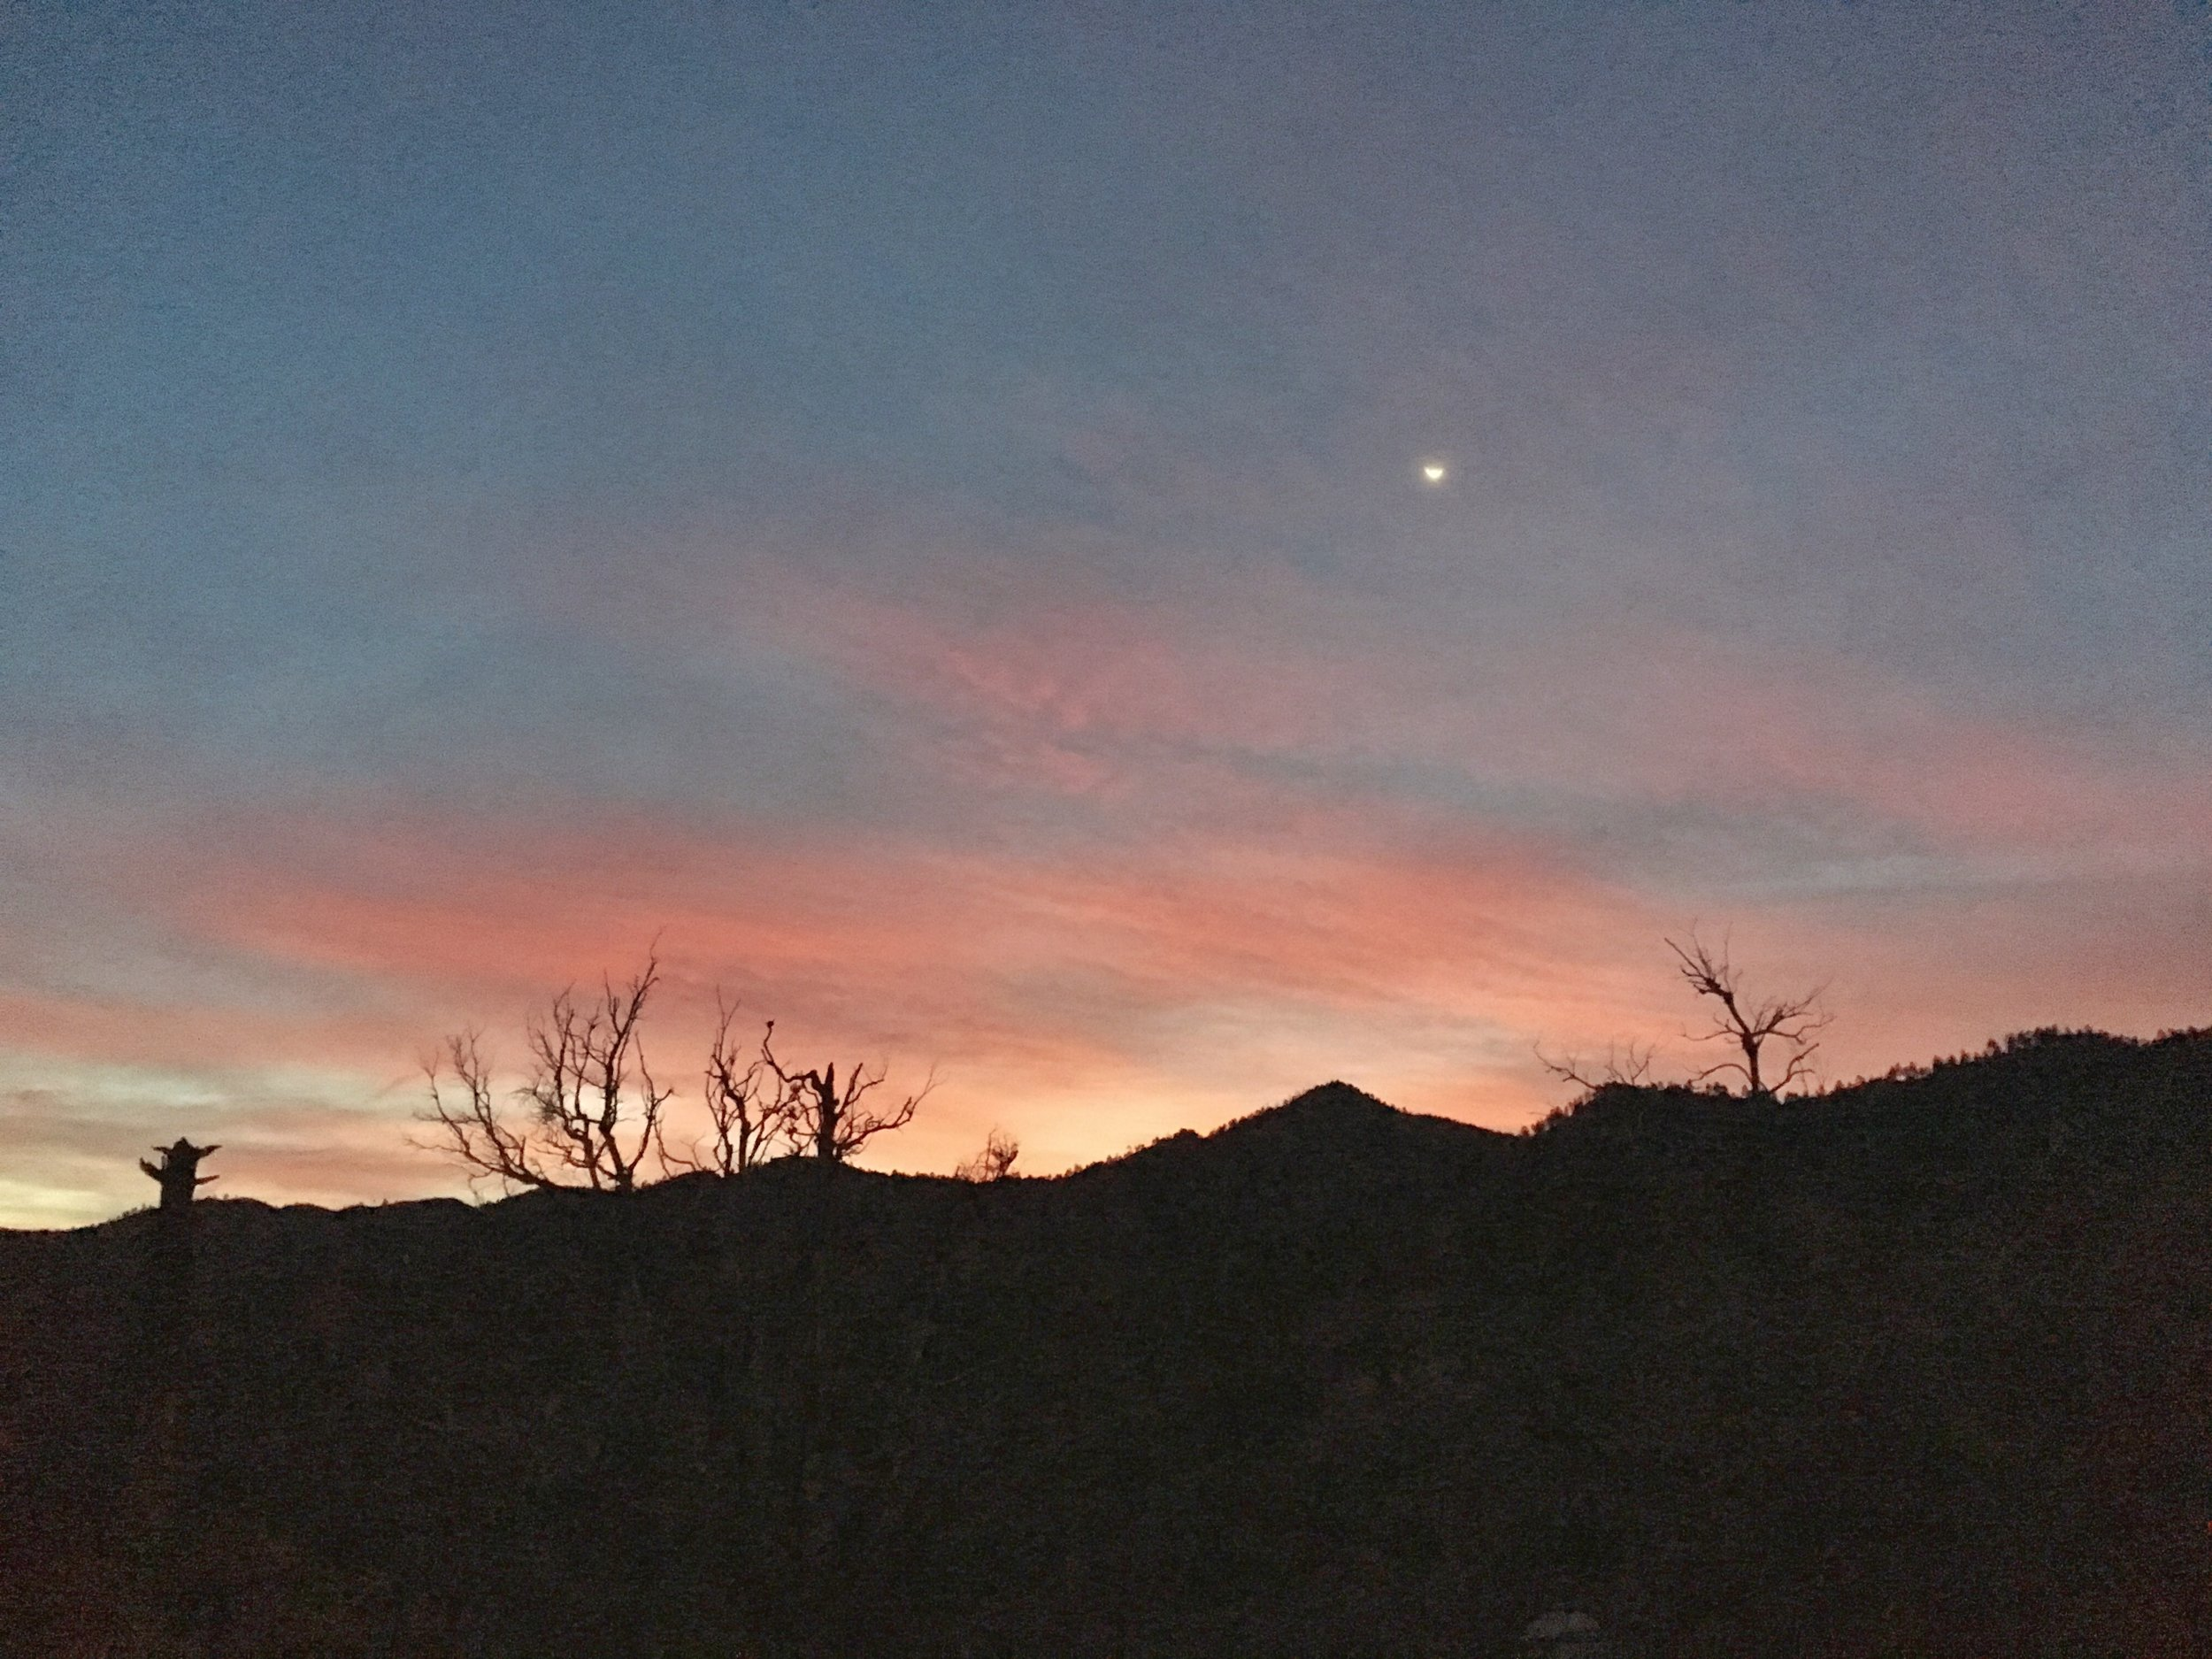 Dawn, time to hit the trail, miles to go.